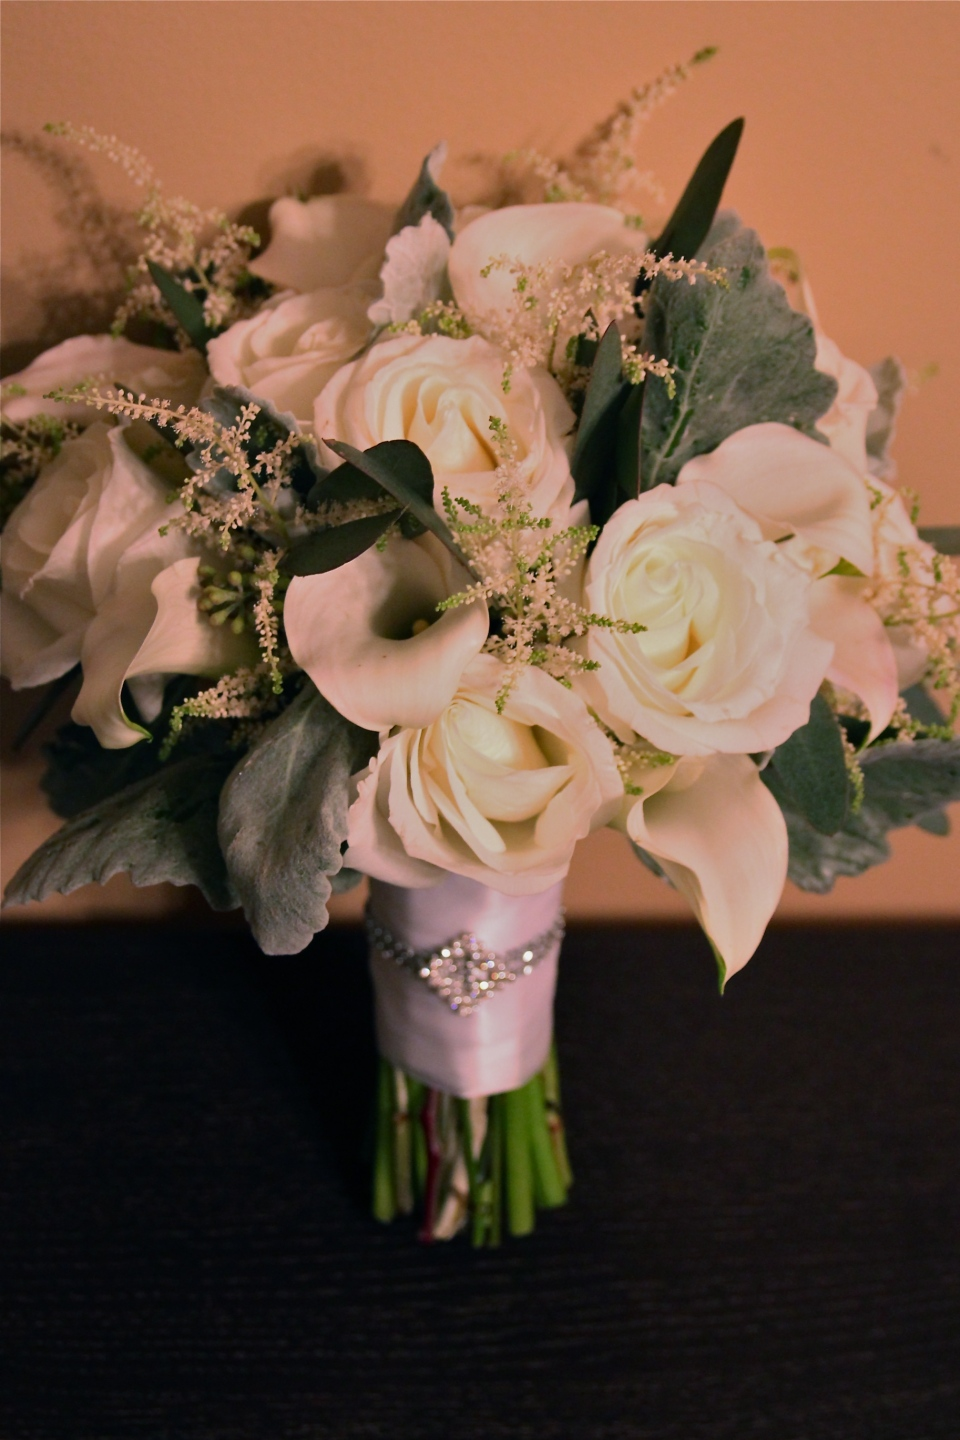 Winter white bridal bouquet of roses, calla lilies, astilbe, dusty miller and seeded eucalyptus.